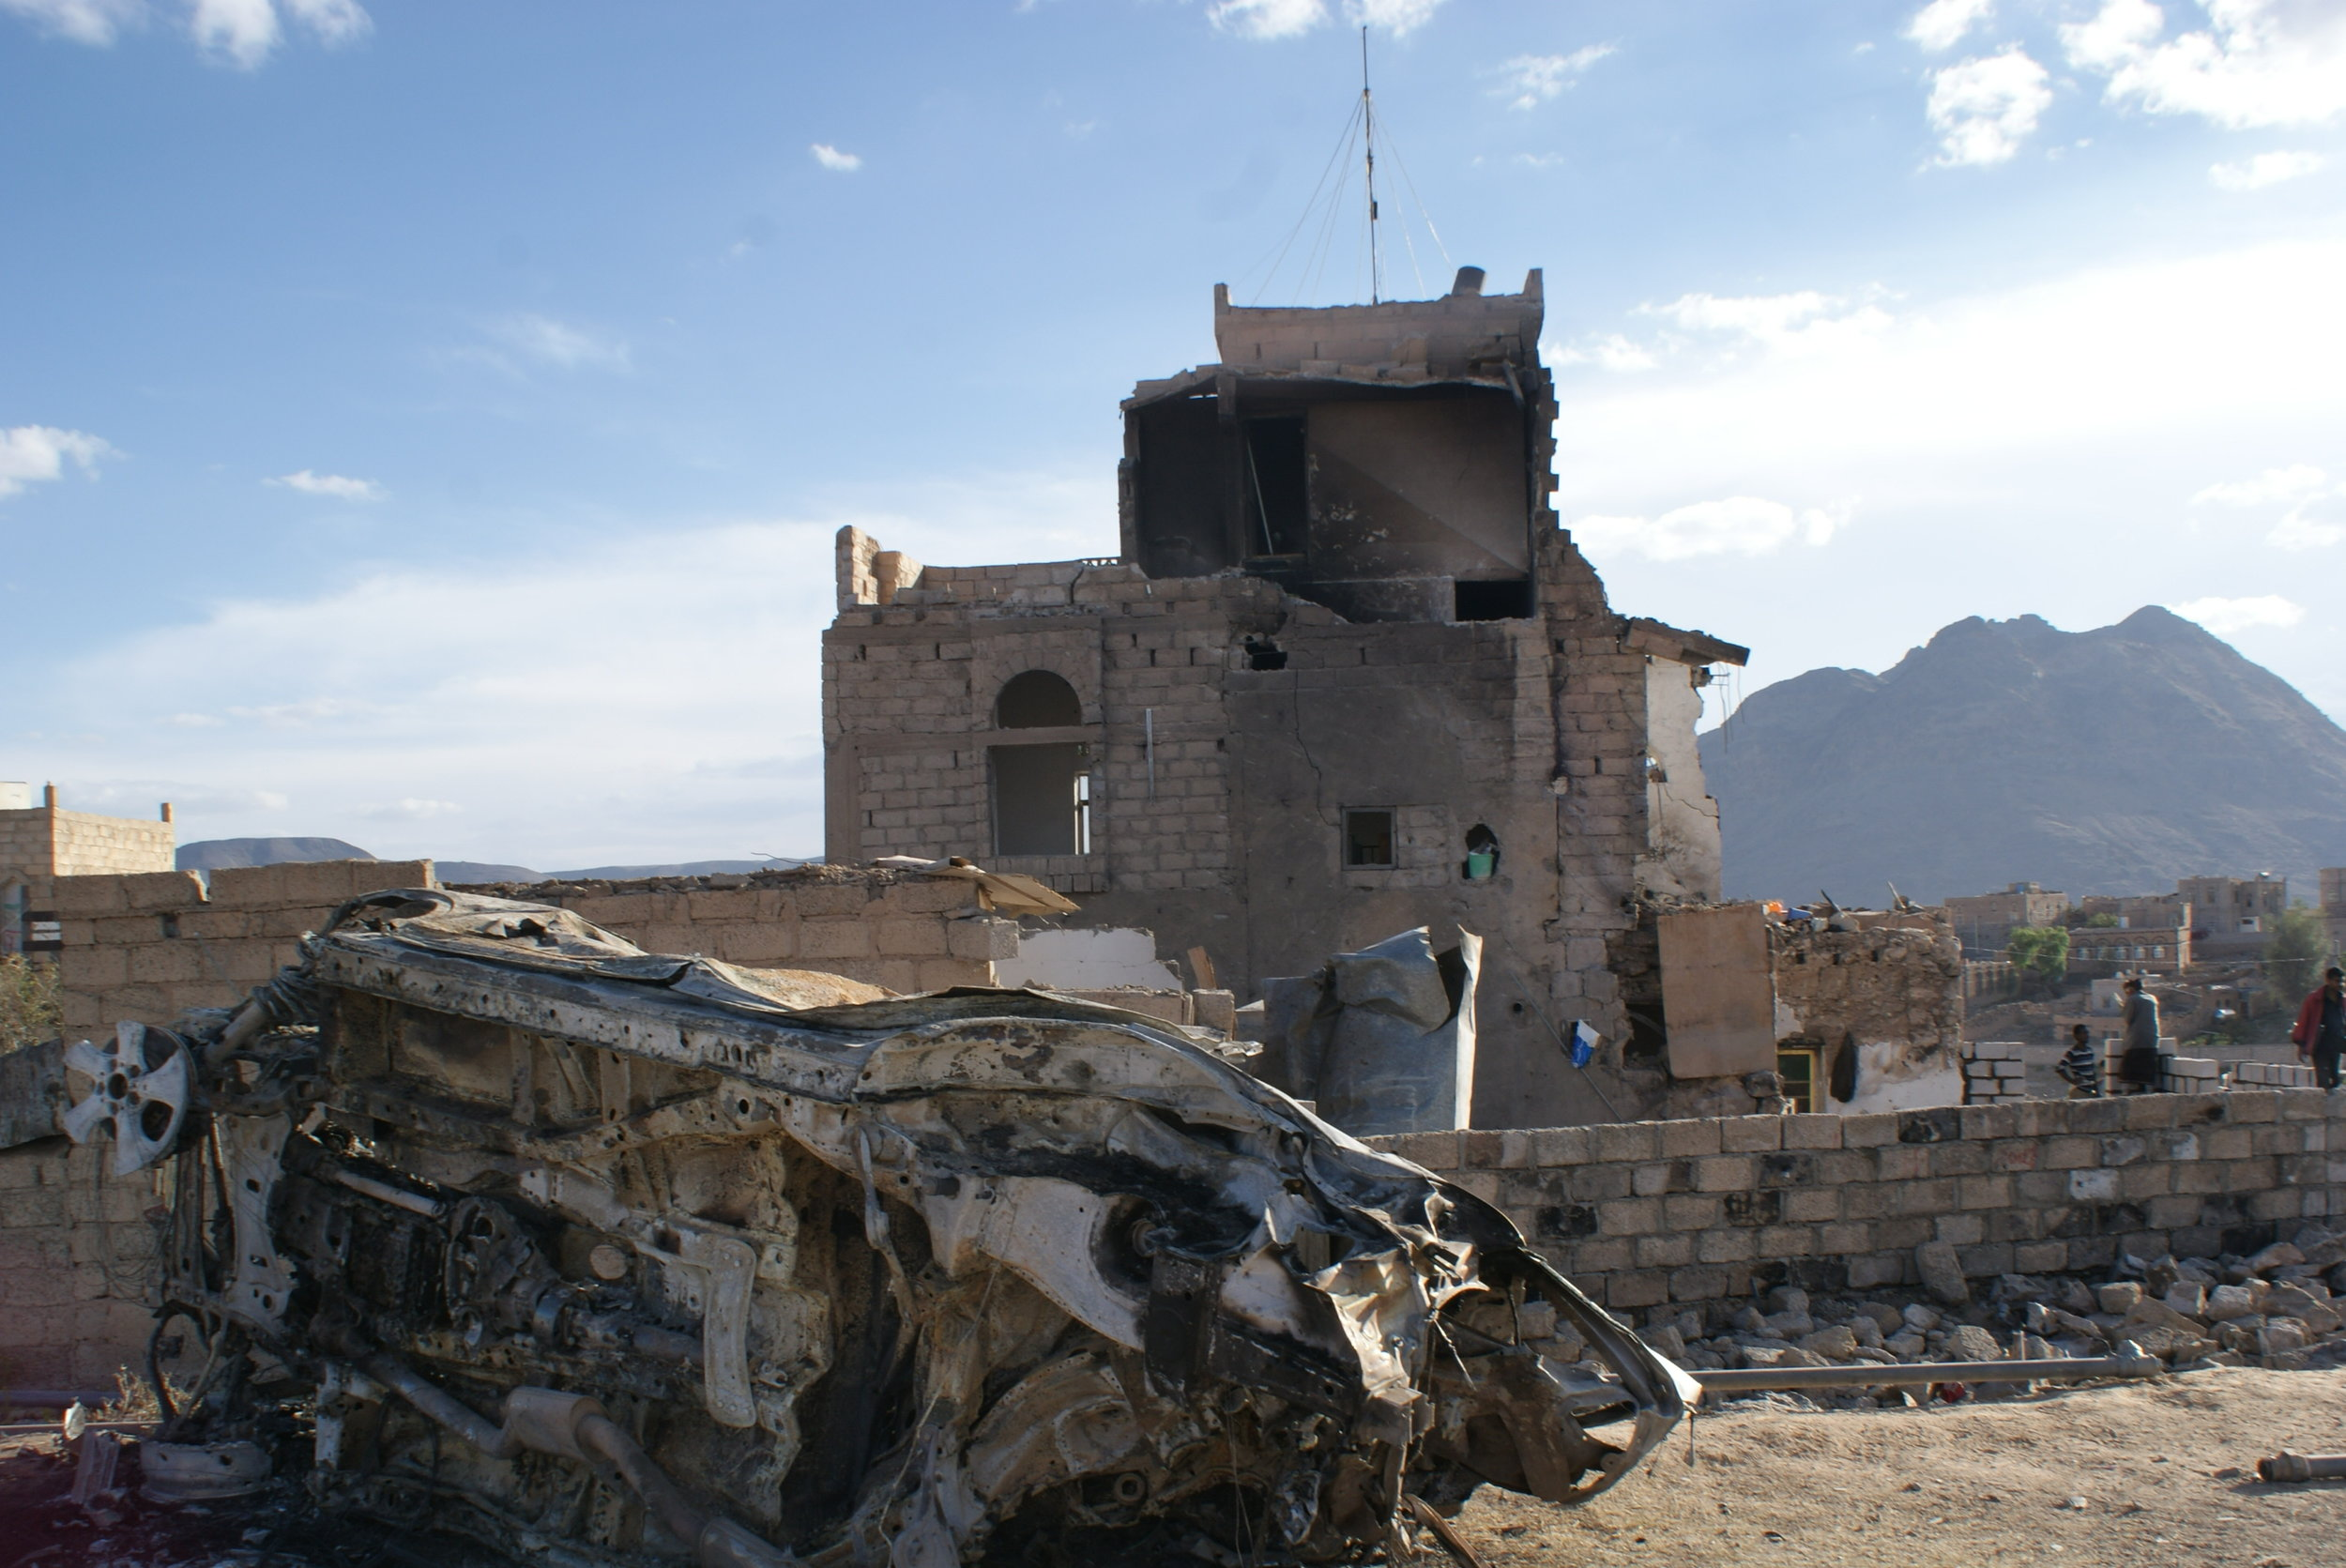 The ruins of the Ghawba family home, with the wreckage of a car from the bridal caravan in the foreground